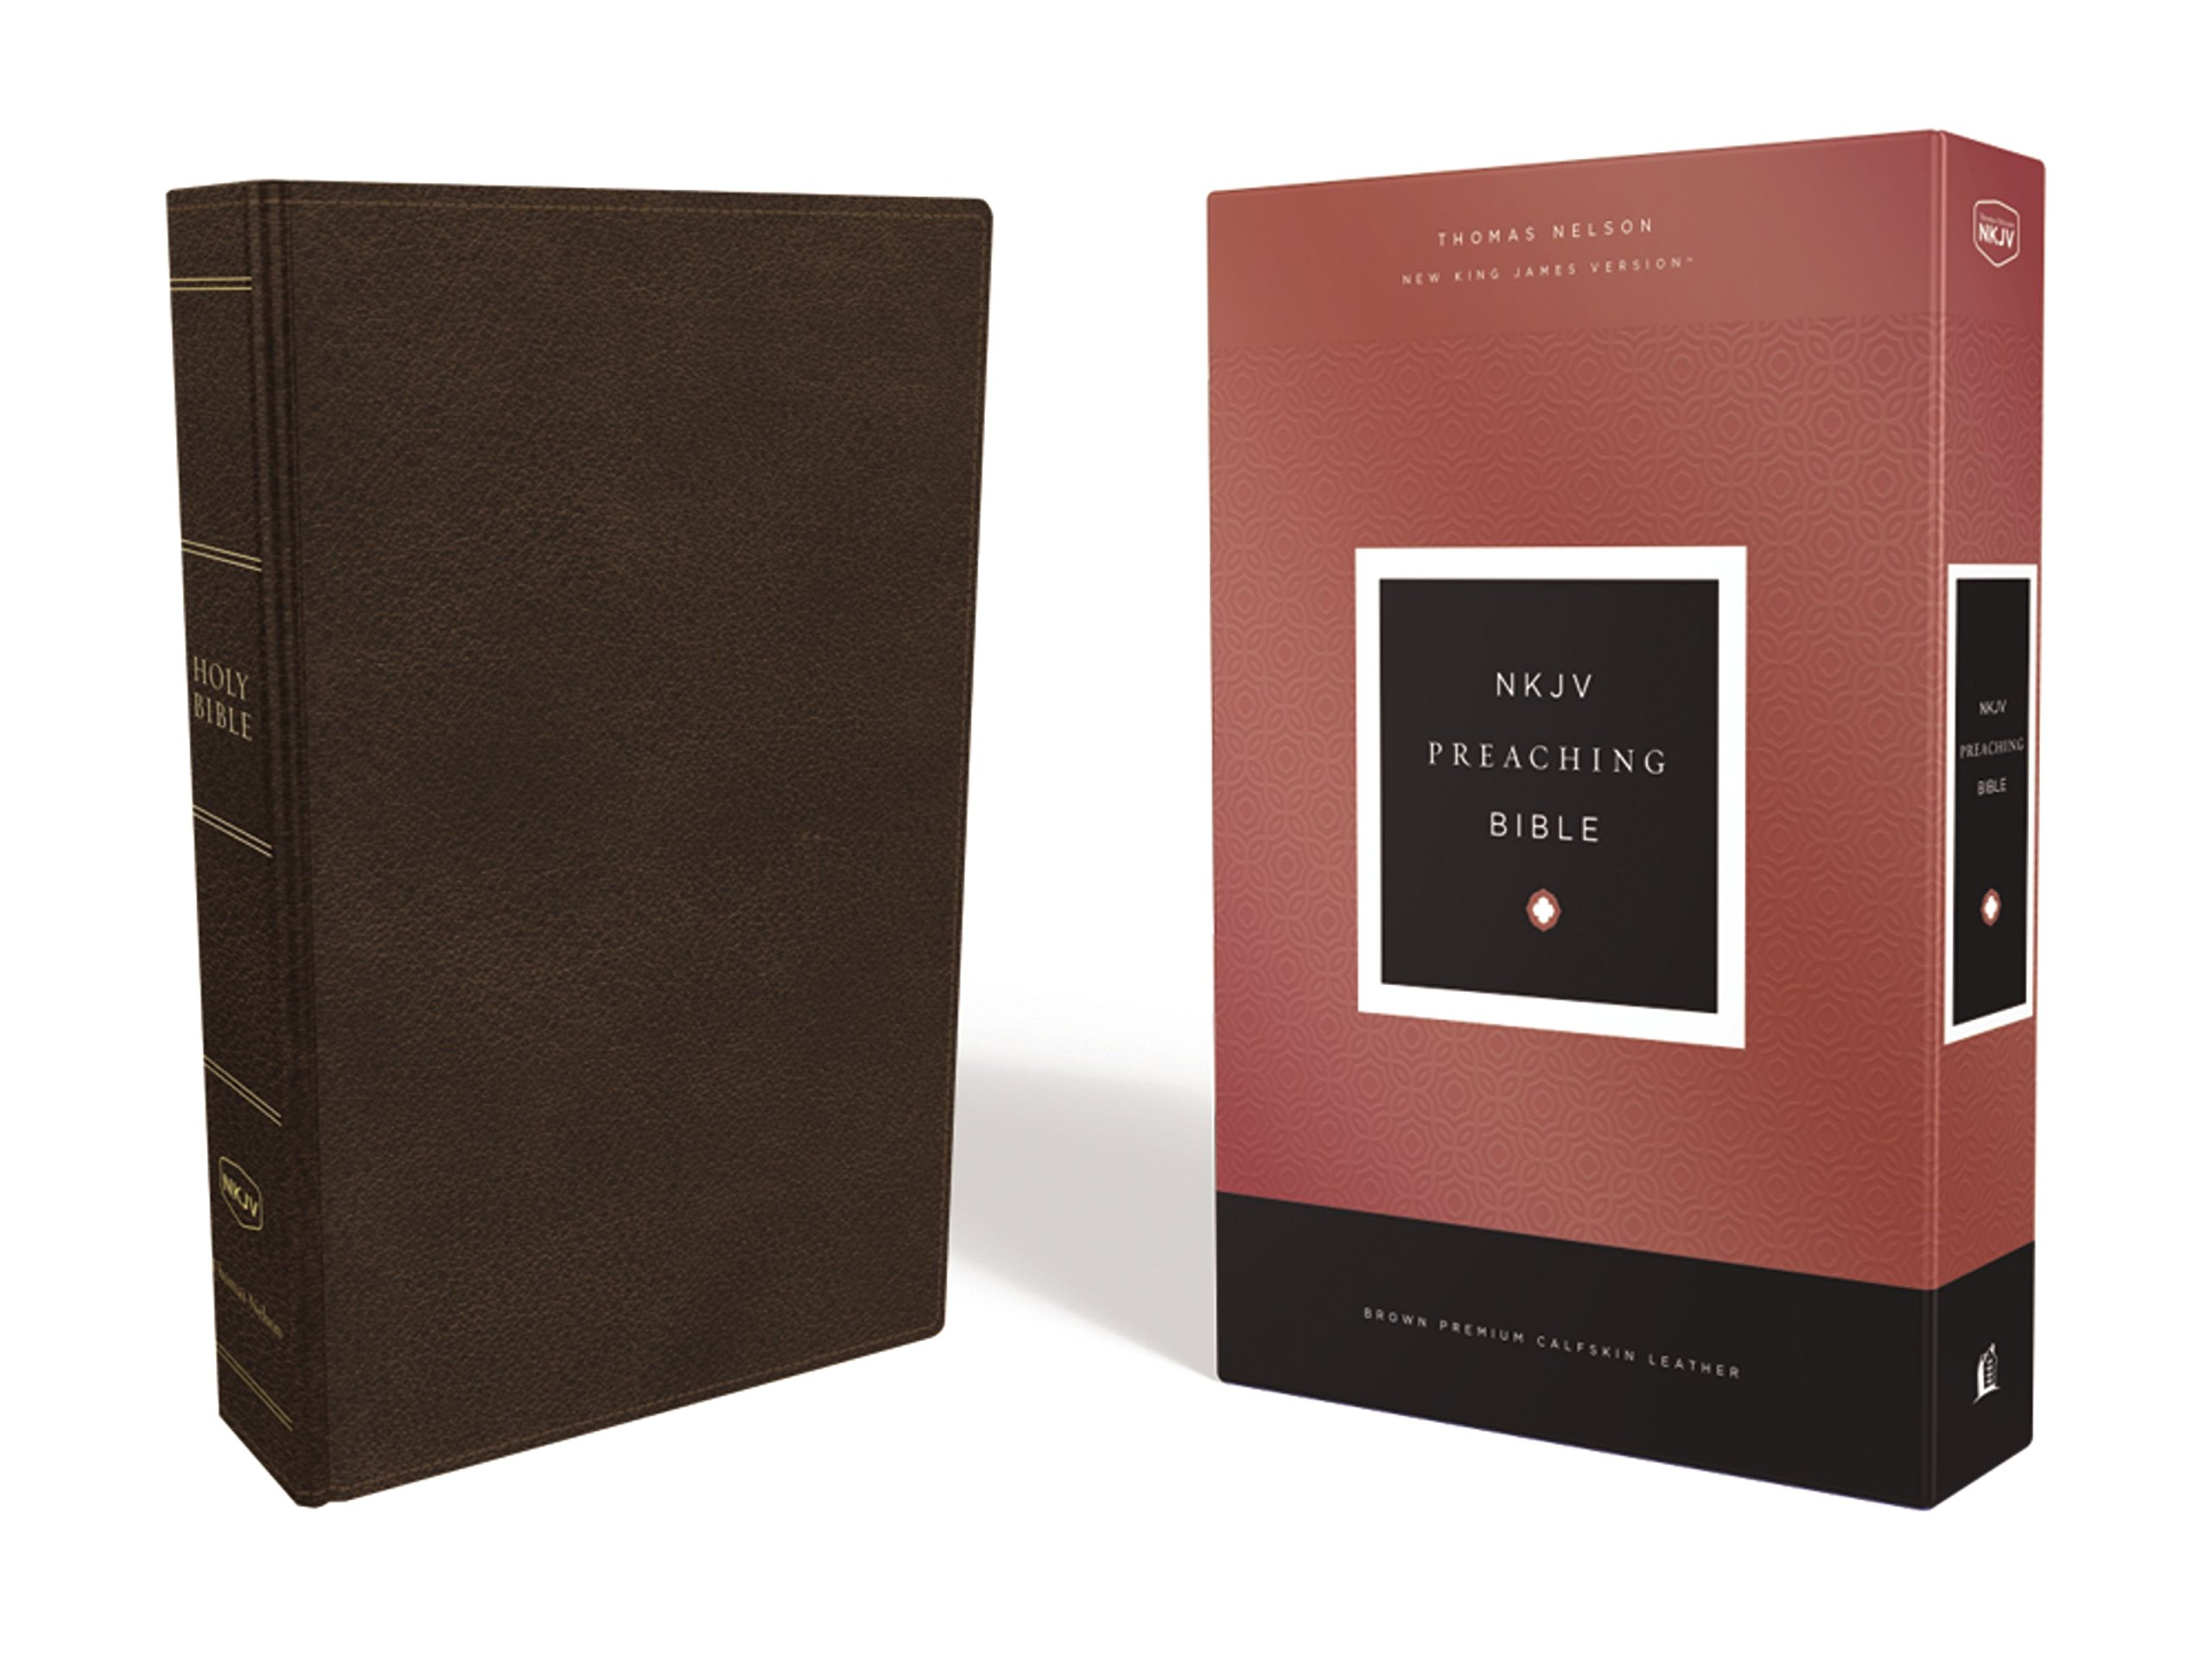 NKJV, Preaching Bible, Premium Calfskin Leather, Brown, Comfort Print: Holy Bible, New King James Version by HarperCollins Christian Pub.